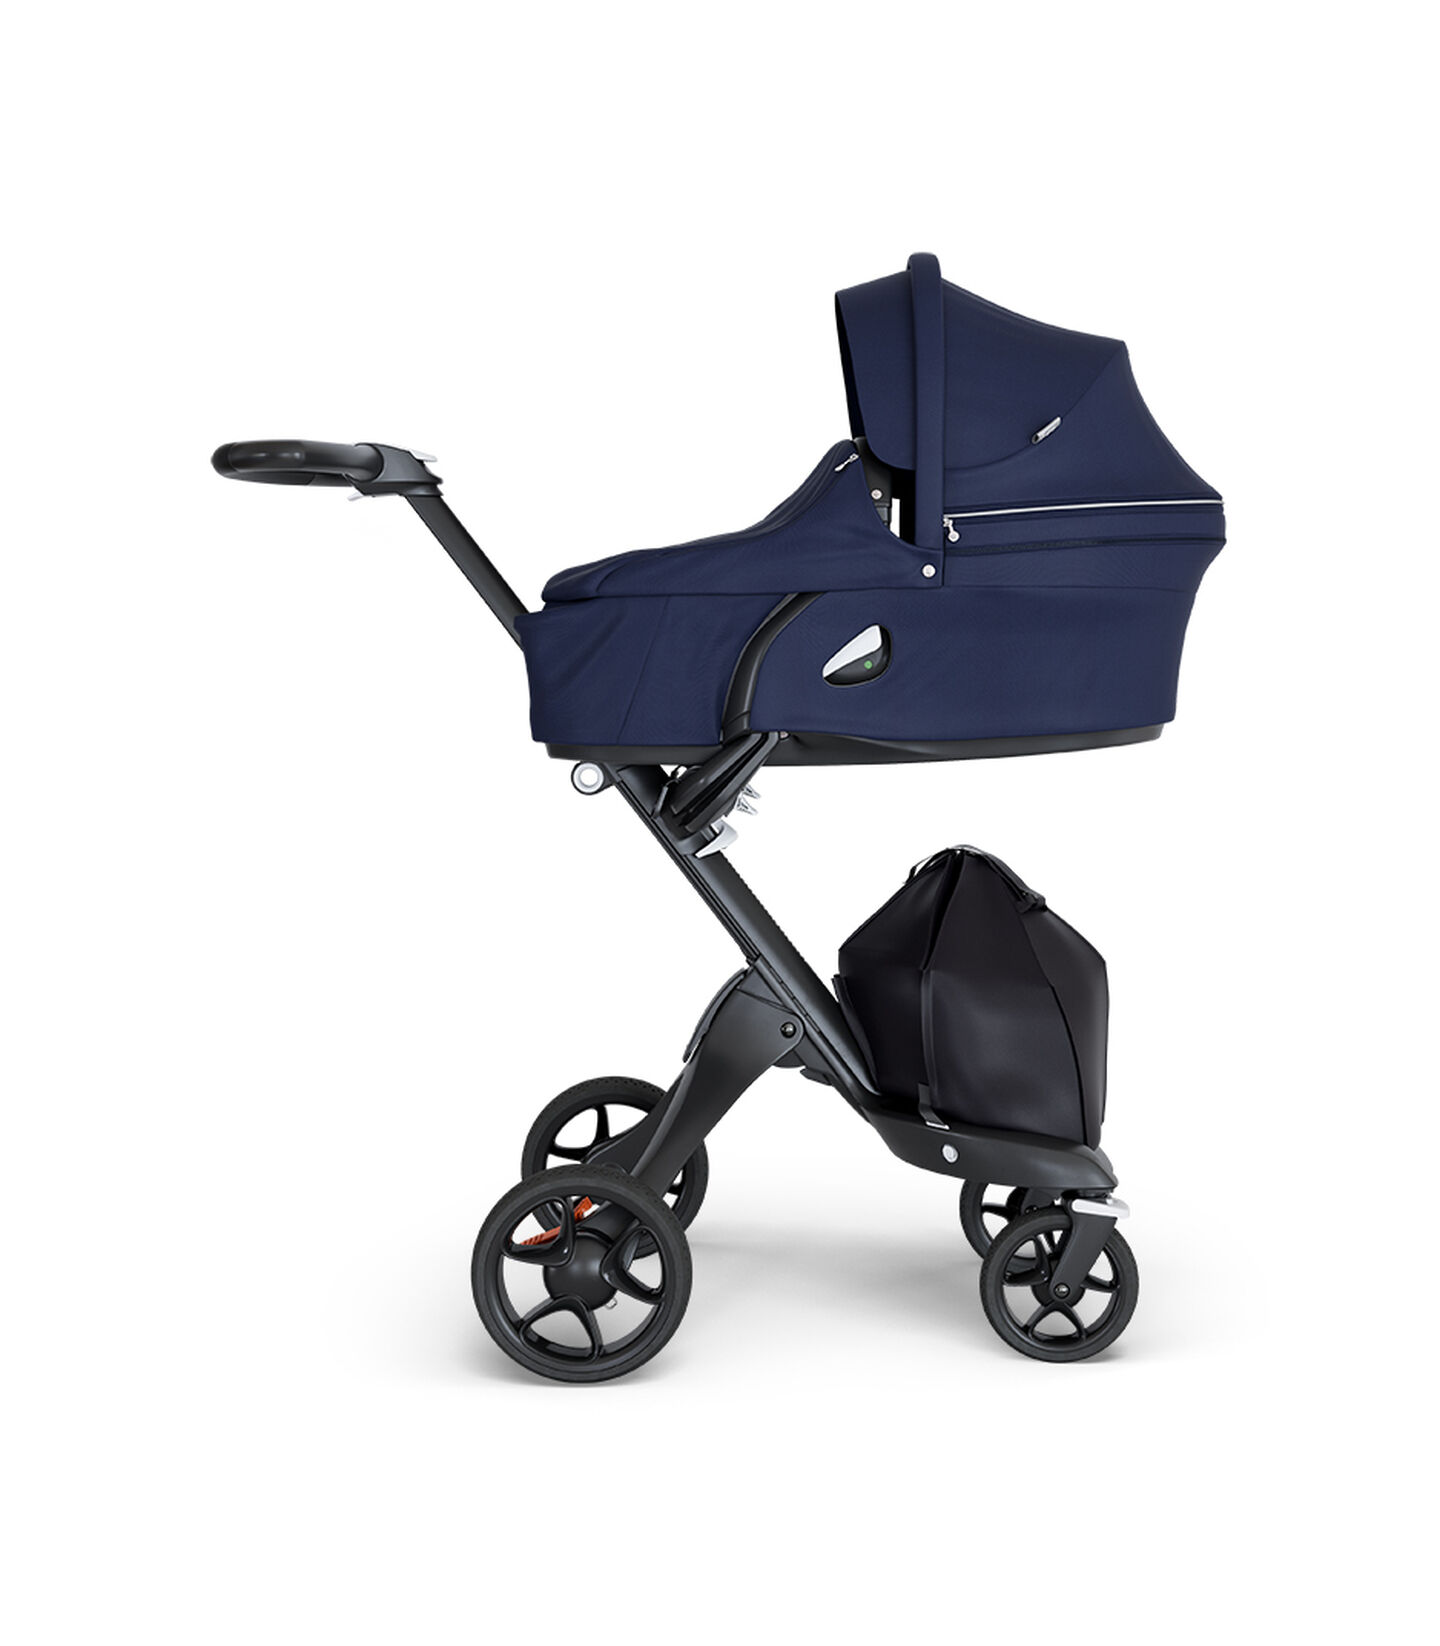 Stokke® Xplory® wtih Black Chassis and Leatherette Black handle. Stokke® Stroller Carry Cot Deep Blue.